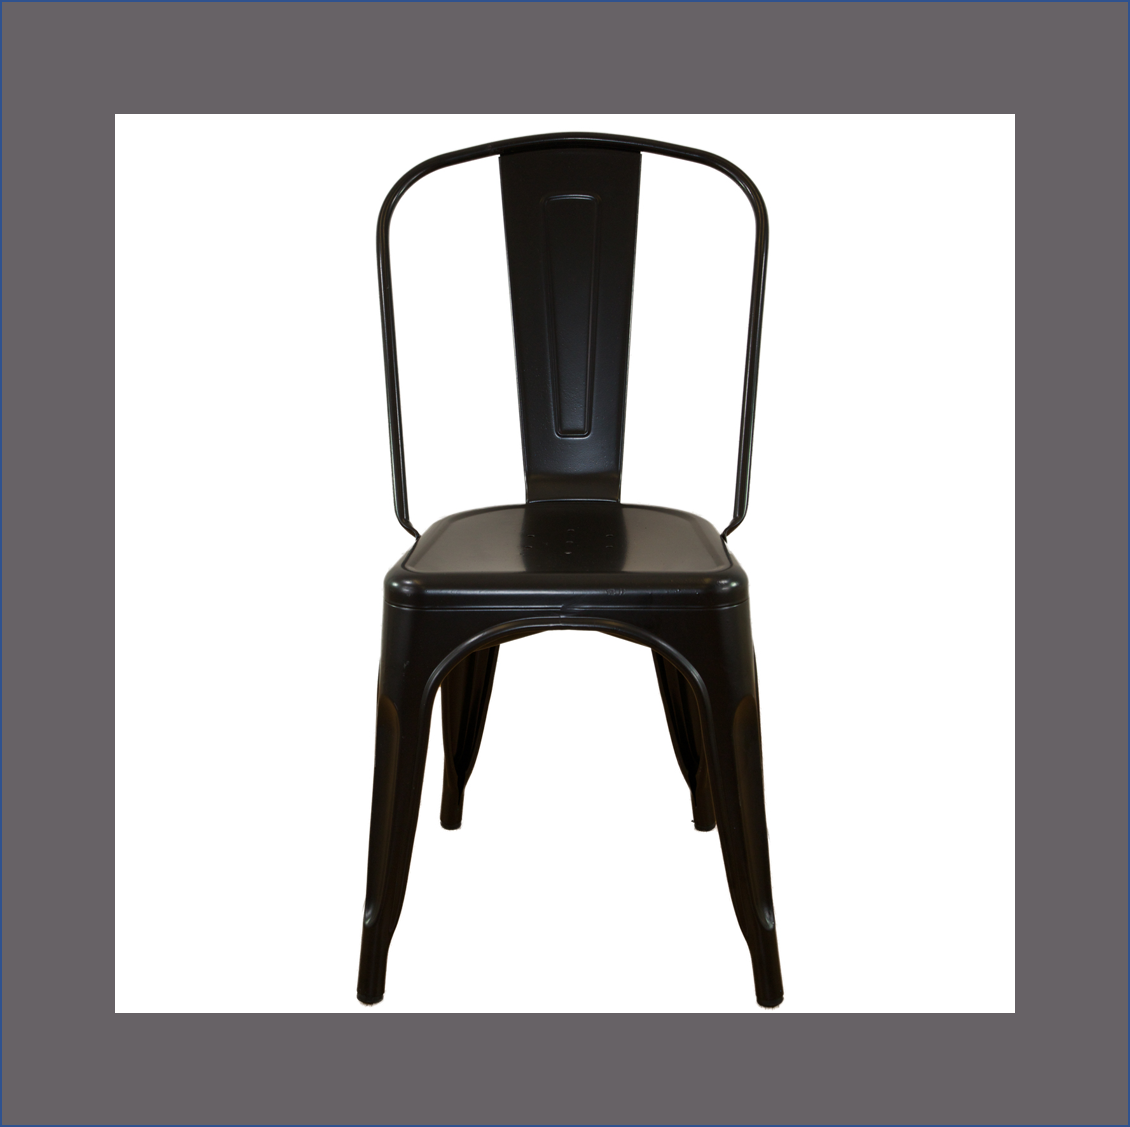 paris-chair